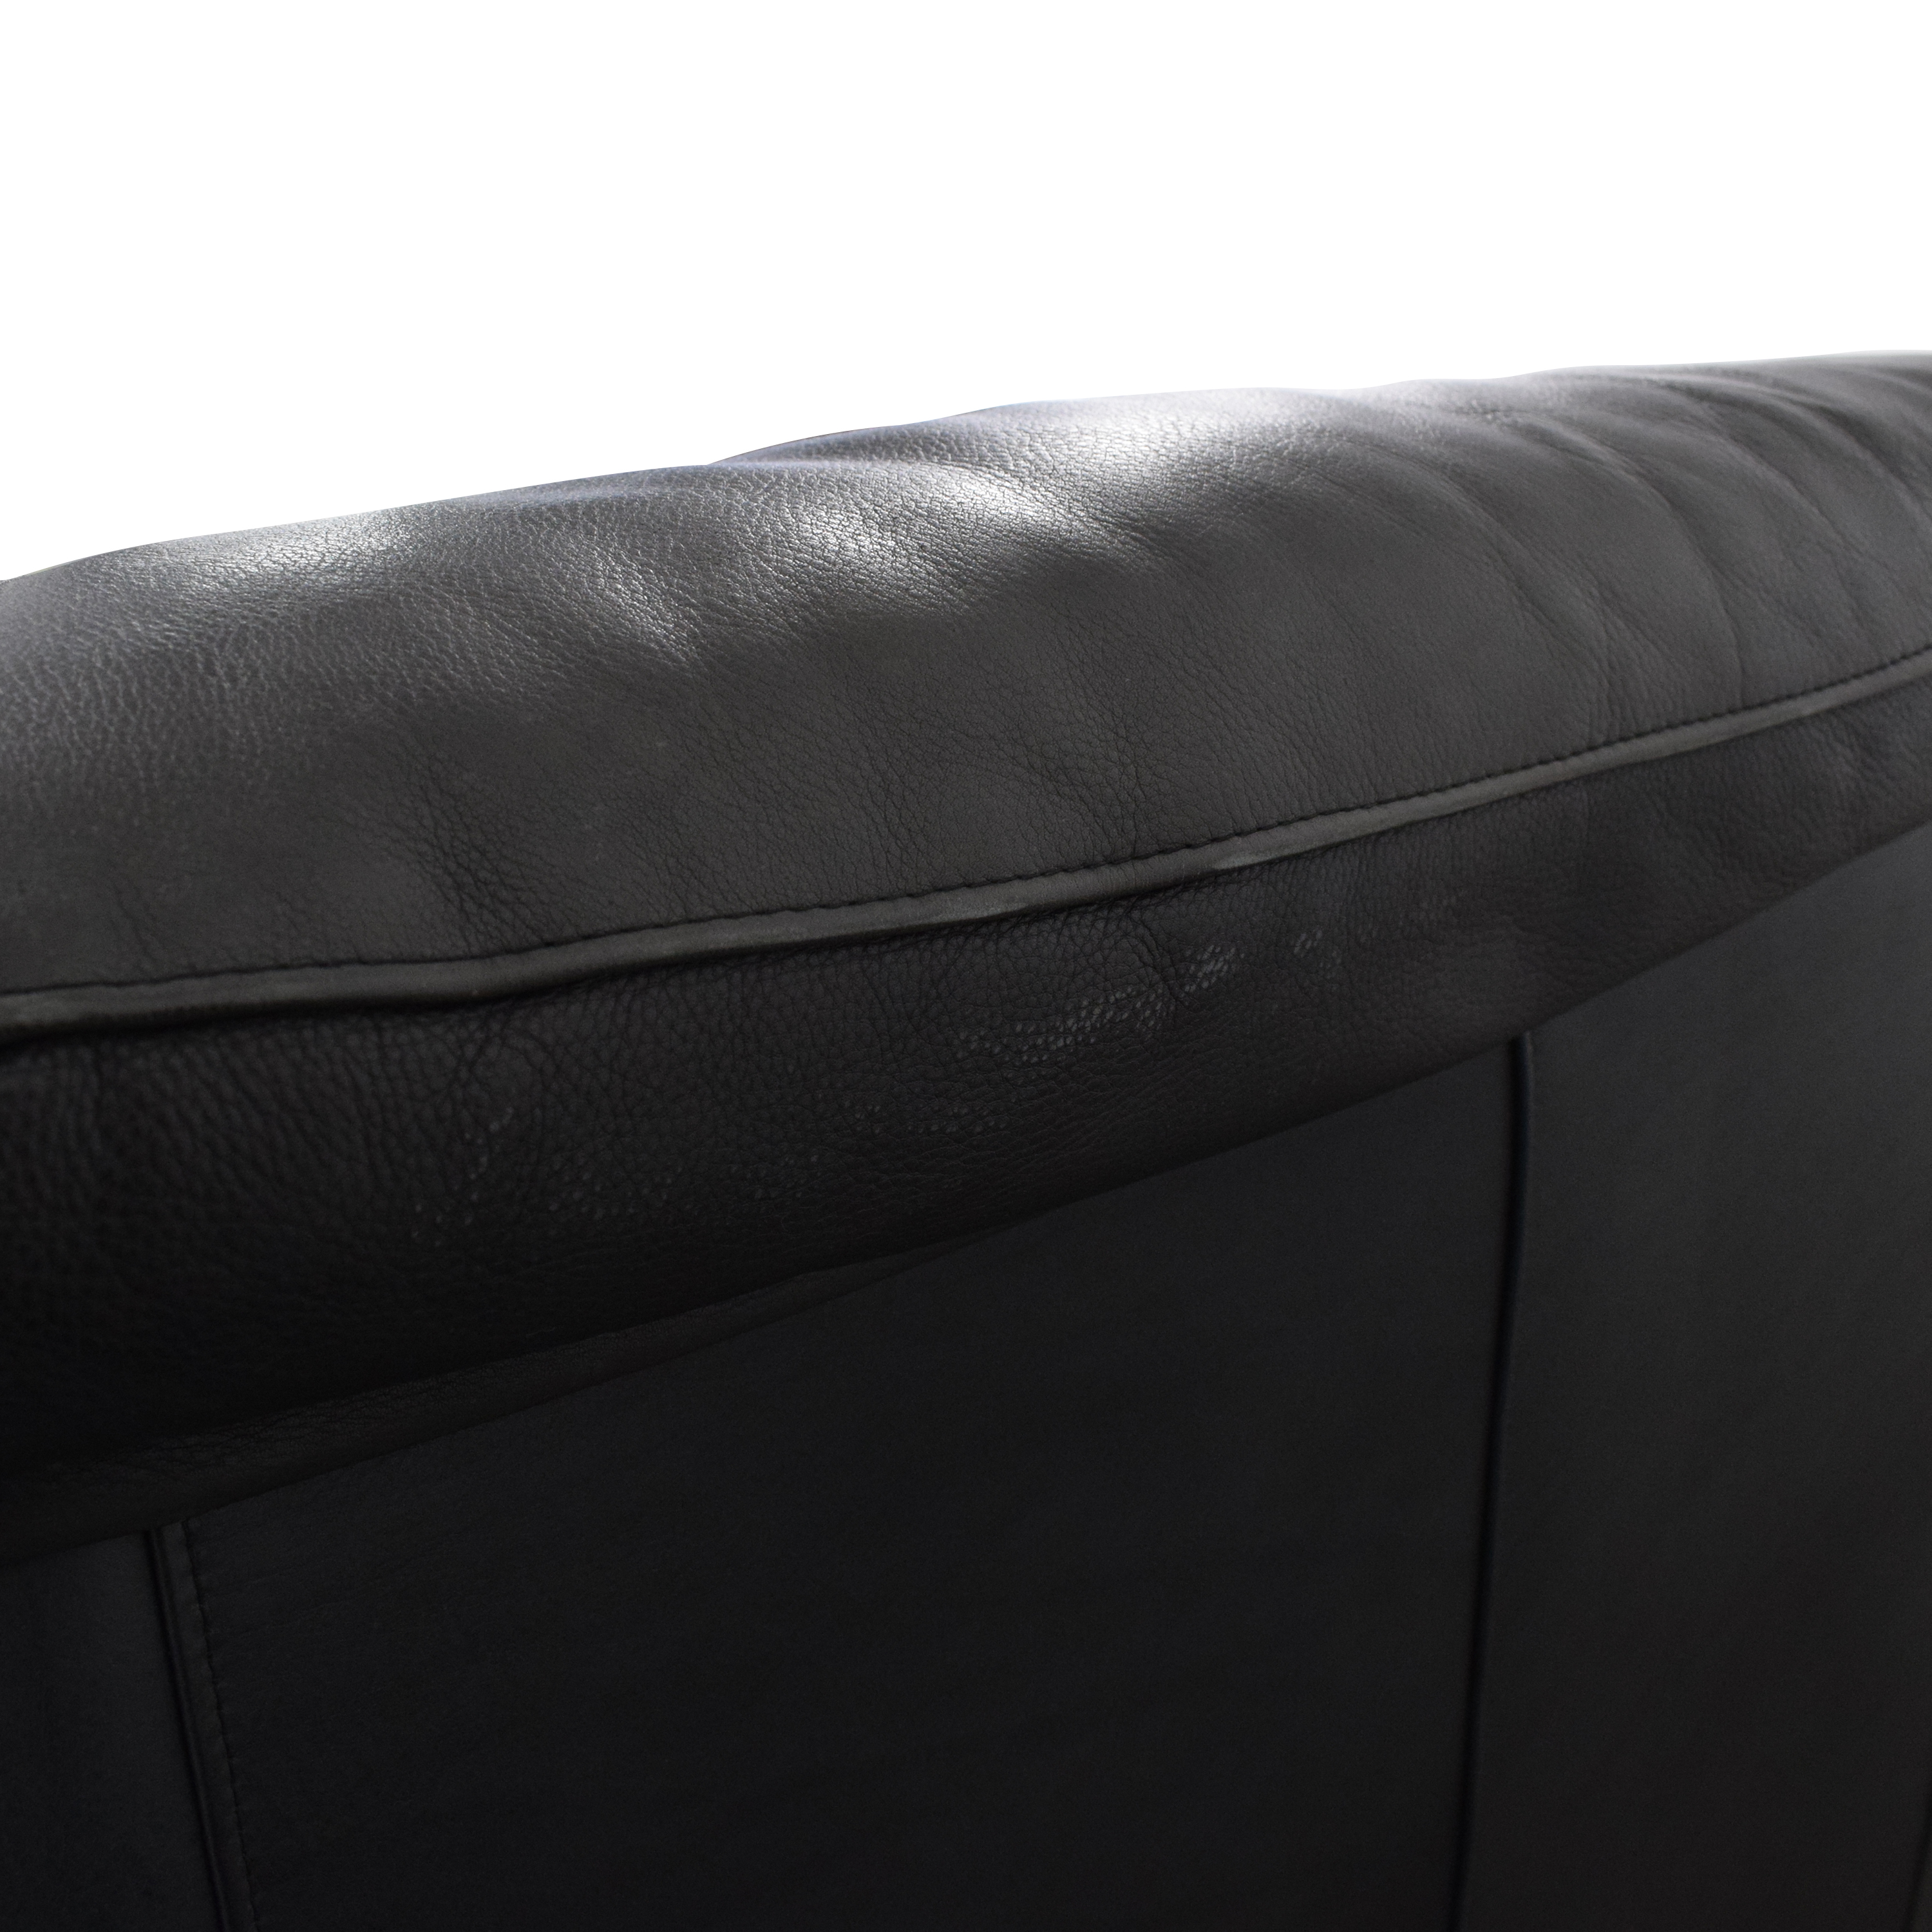 Leather Center Leather Center Flat Arm Loveseat dimensions